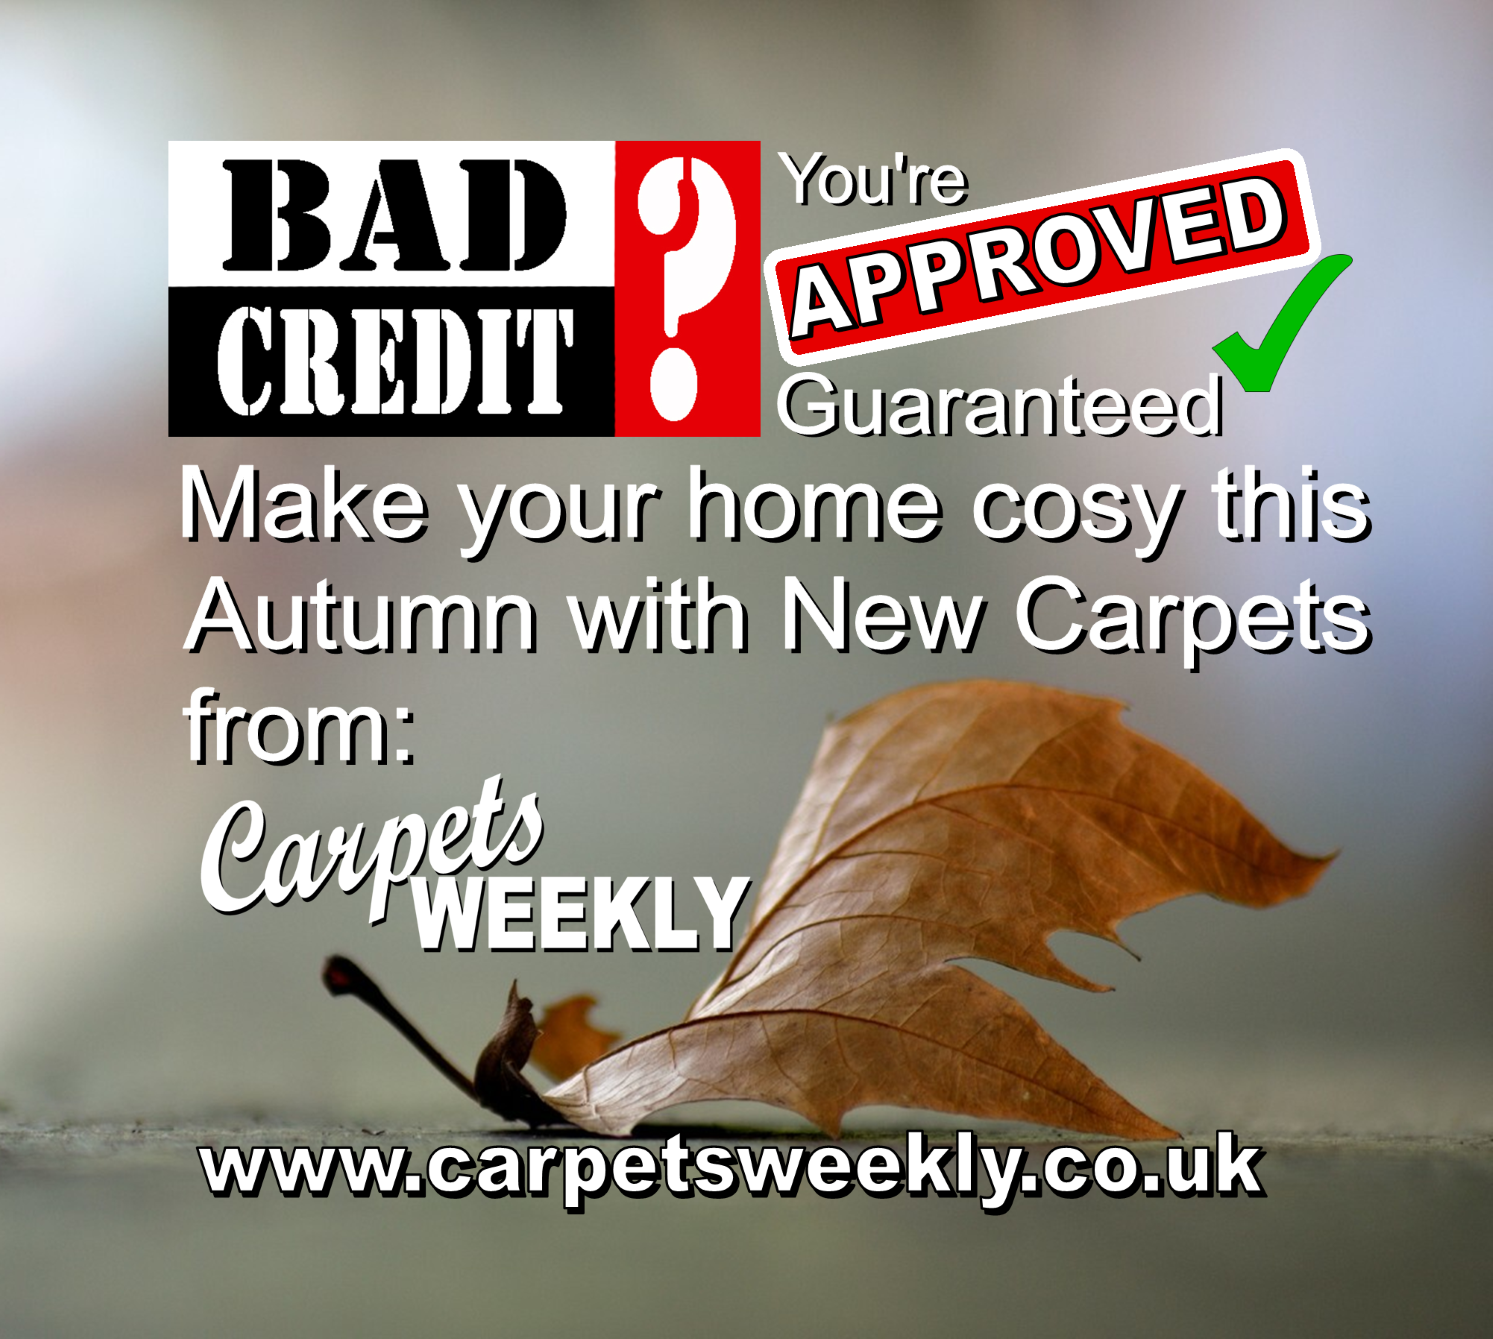 Autumn is coming stay warm with Carpets Weekly